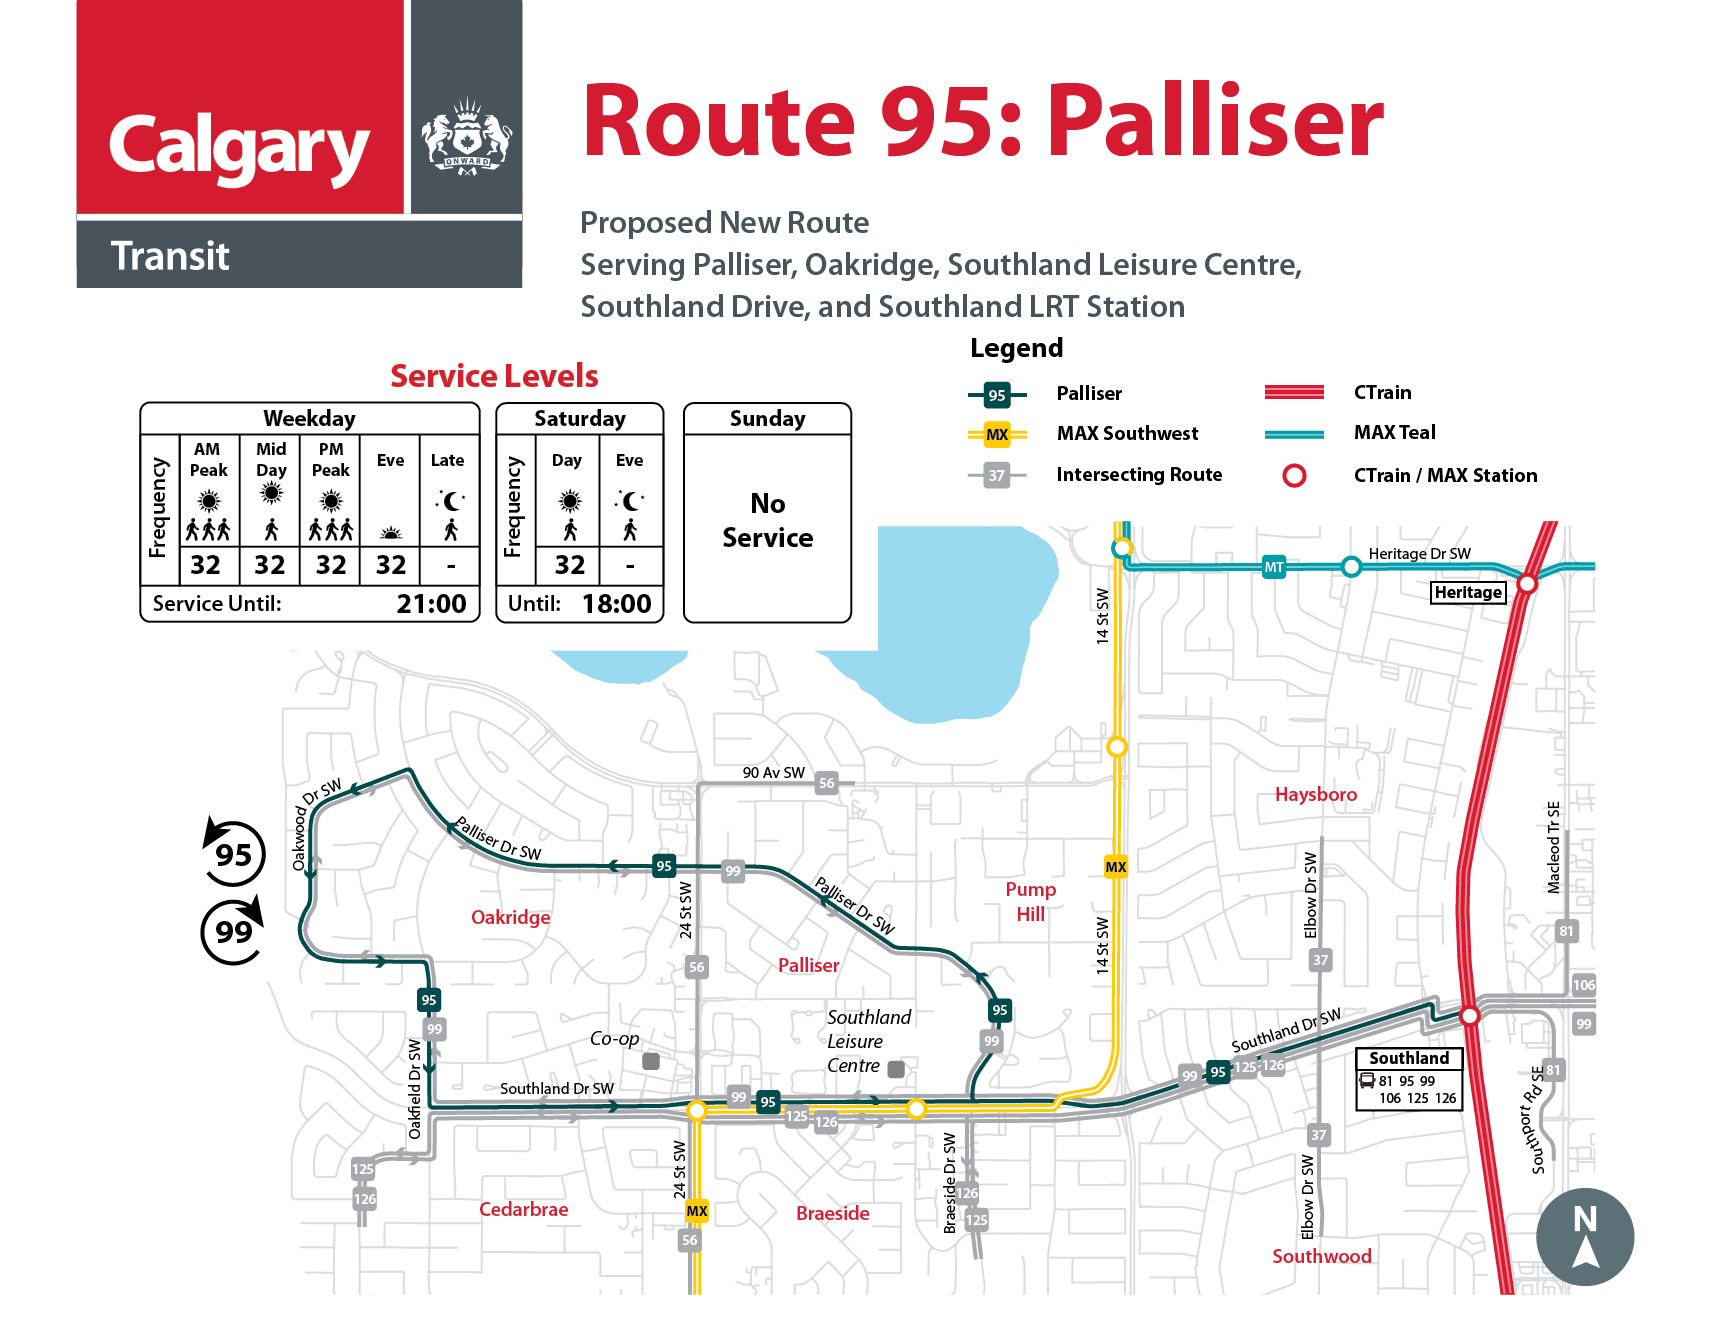 Proposed Changes to Route 95